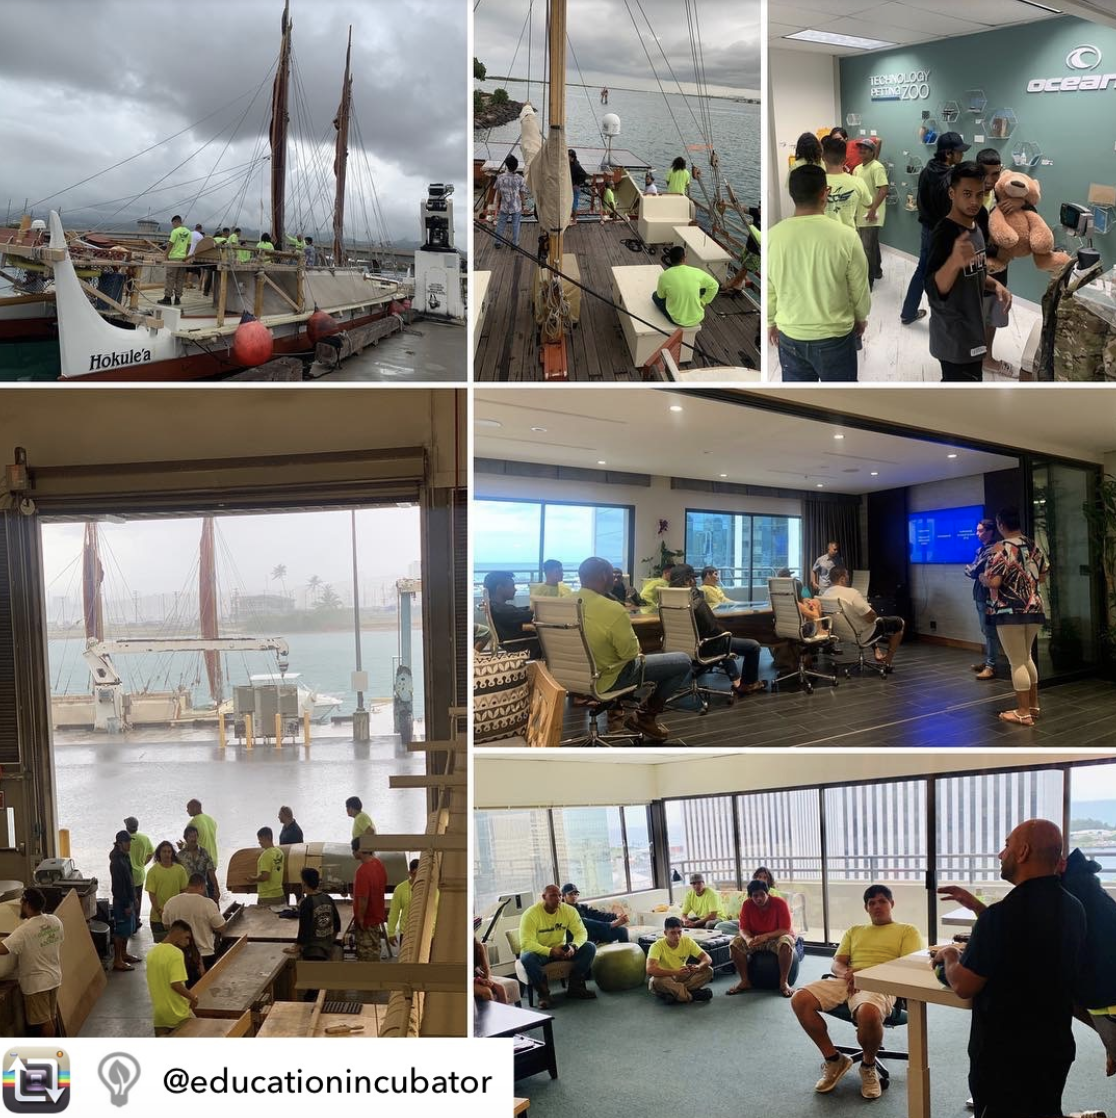 Highlights from Kinai ʻEha's December huakaʻi, taken from our Instagram post. Follow us!